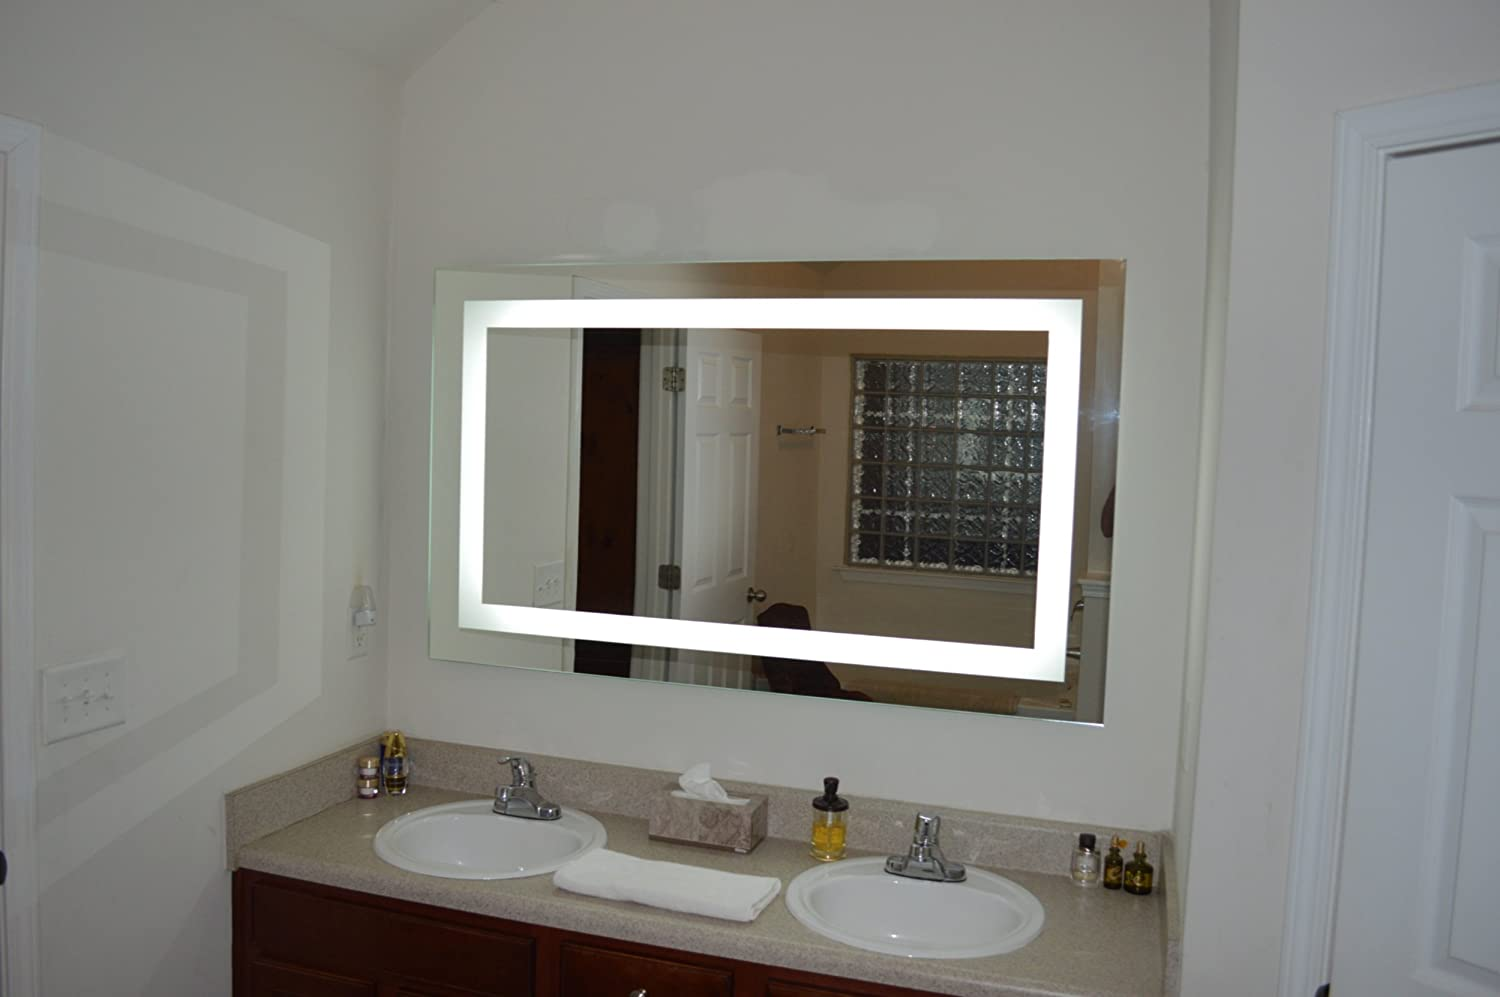 Amazon lighted vanity mirror led mam86036 commercial grade 60 amazon lighted vanity mirror led mam86036 commercial grade 60 wide x 36 tall home kitchen aloadofball Gallery